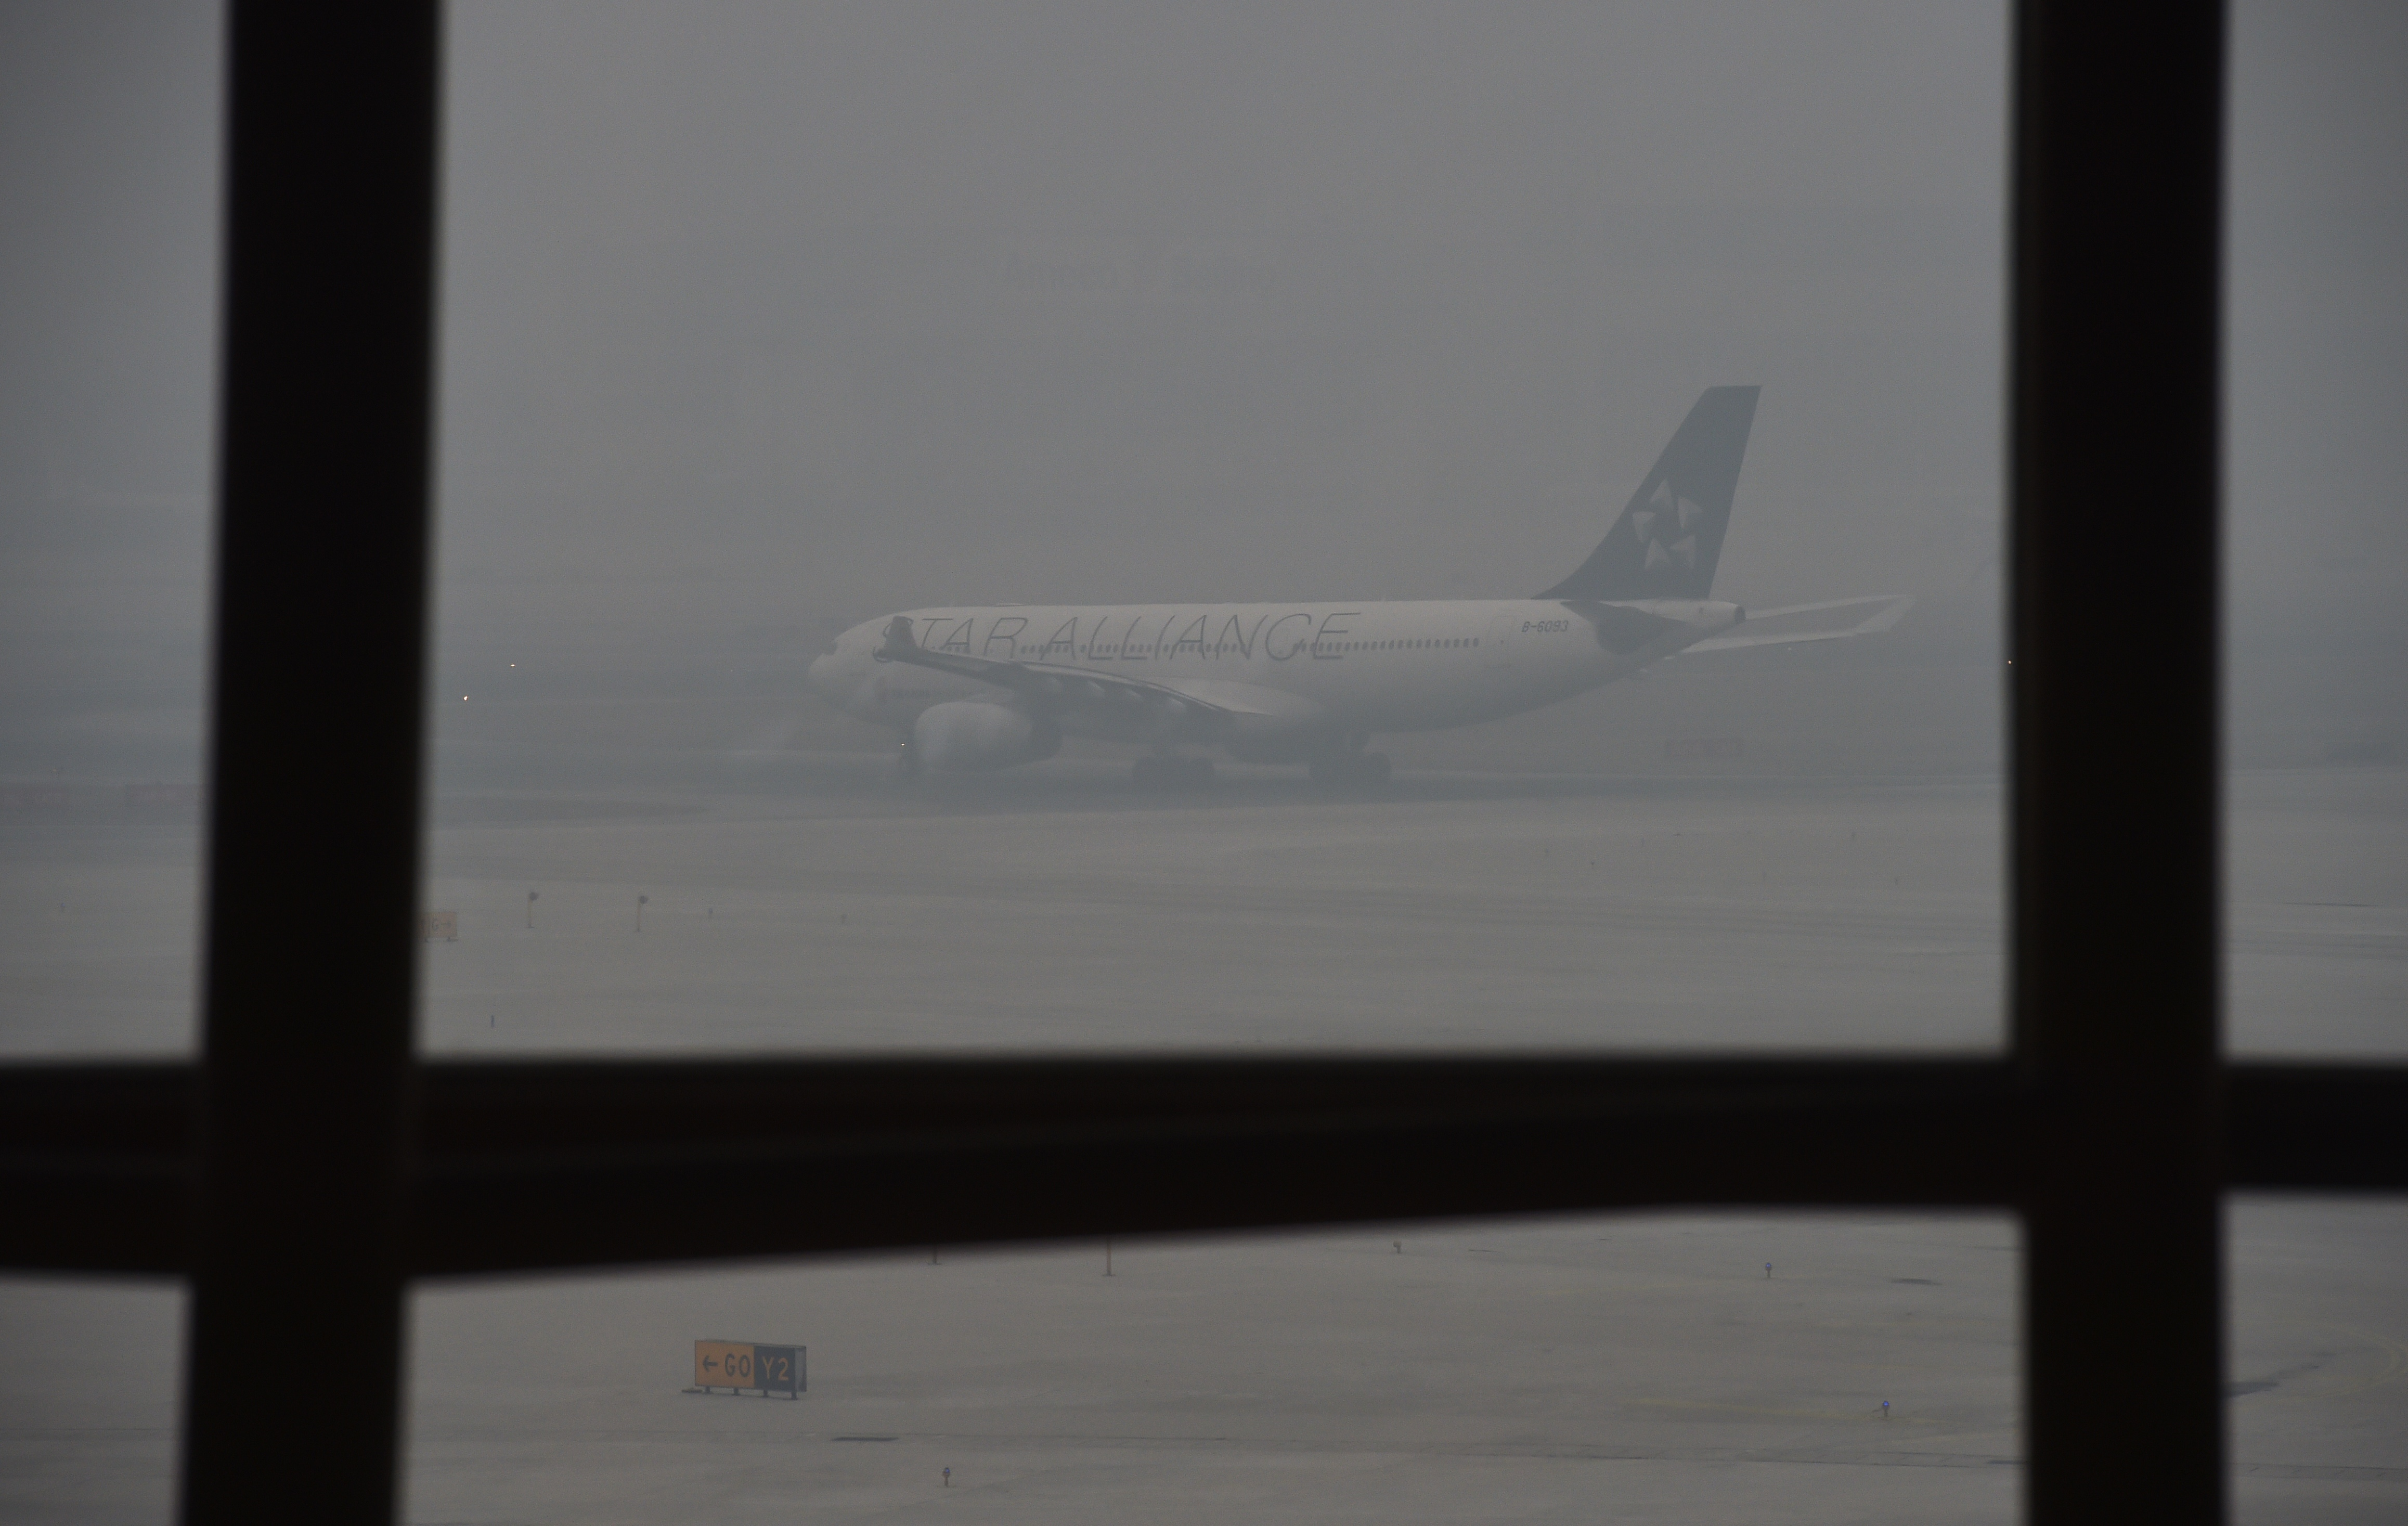 A plane waits to take off on a day of heavy pollution at the airport in Beijing on December 8, 2015. Half of Beijing's private cars were ordered off the streets on December 8 and many construction sites and schools were closed under the Chinese capital's first-ever red alert for pollution. AFP PHOTO / GREG BAKER / AFP / GREG BAKER (Photo credit should read GREG BAKER/AFP/Getty Images)